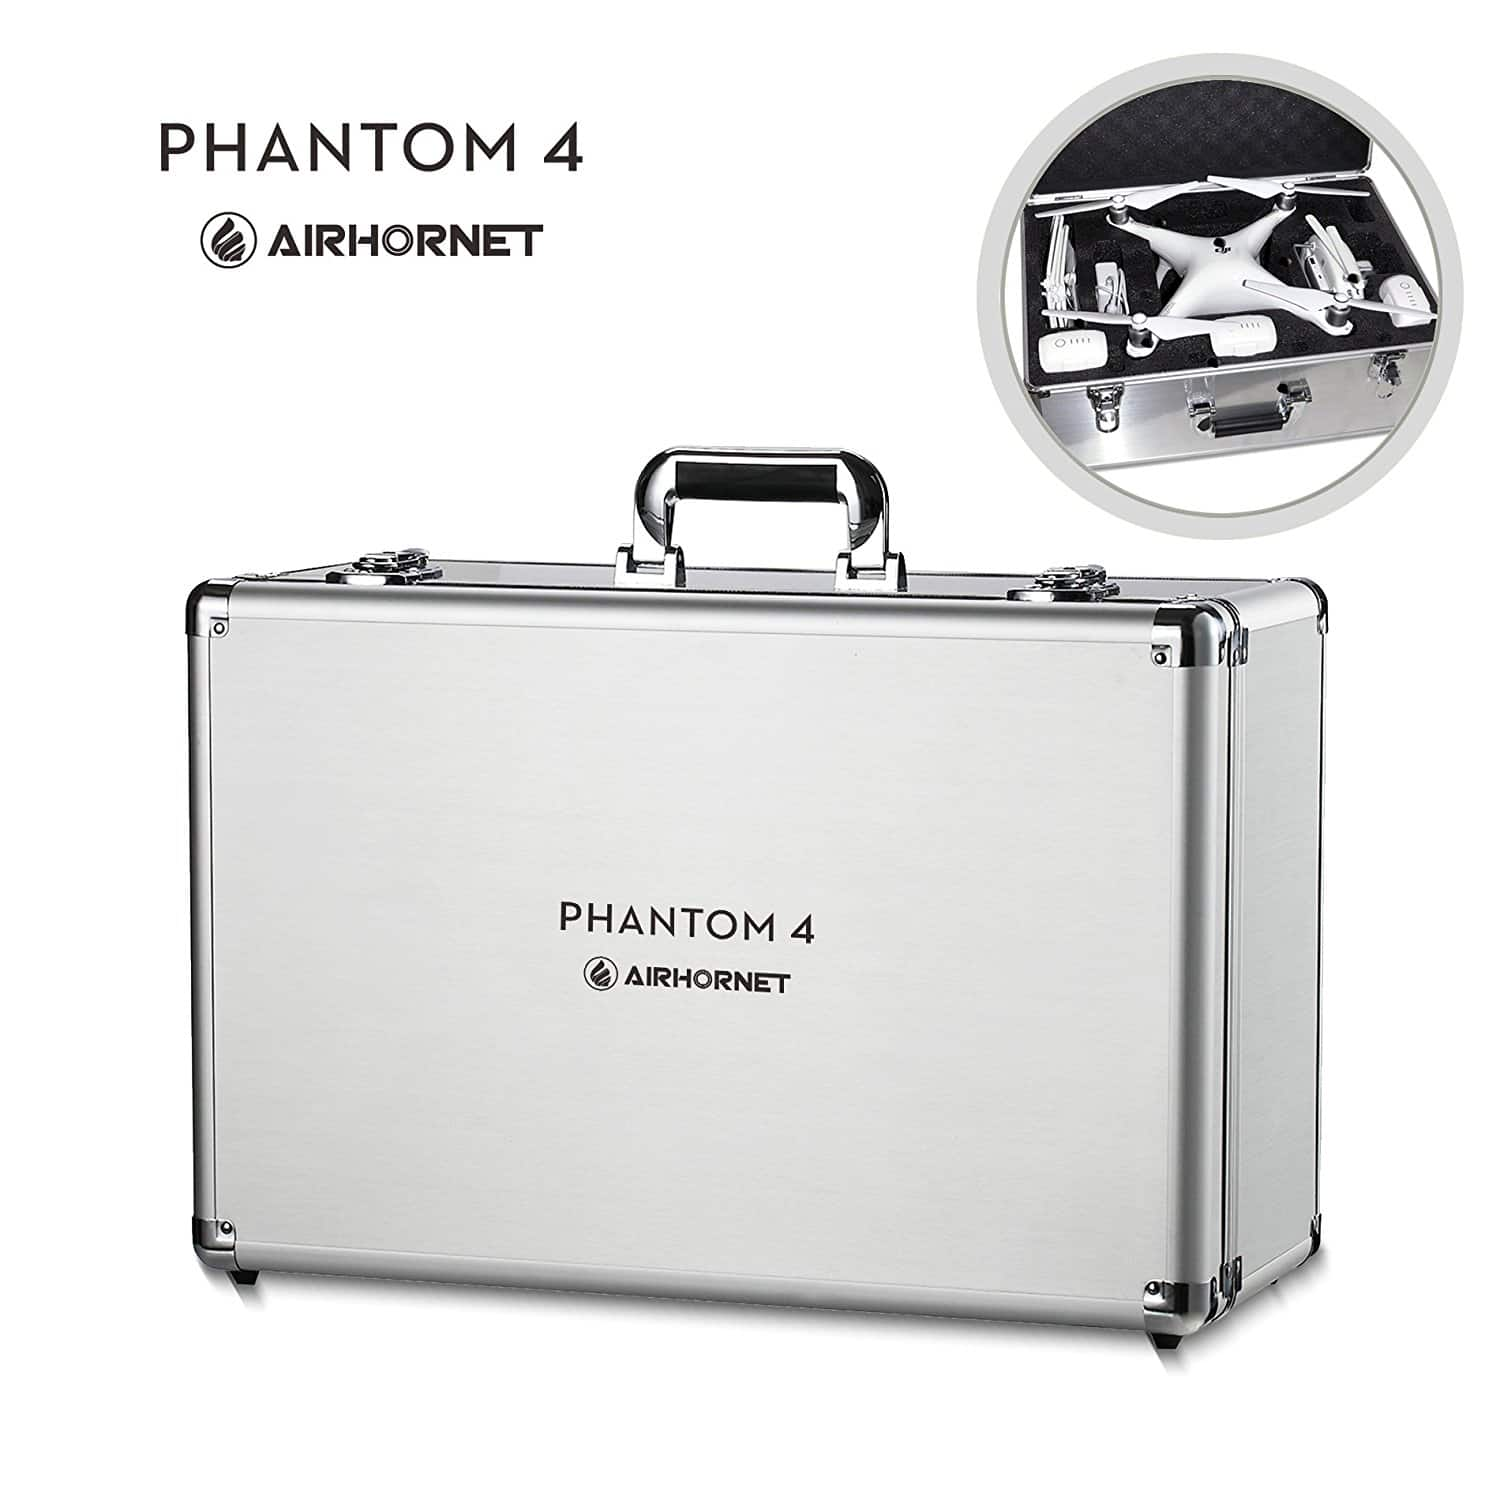 20% off  Airhornet hard-shell Carrying Case  for DJI Phantom 4 $55.99, DJI Phantom 4 backpack $51.99 +FS @Amazon